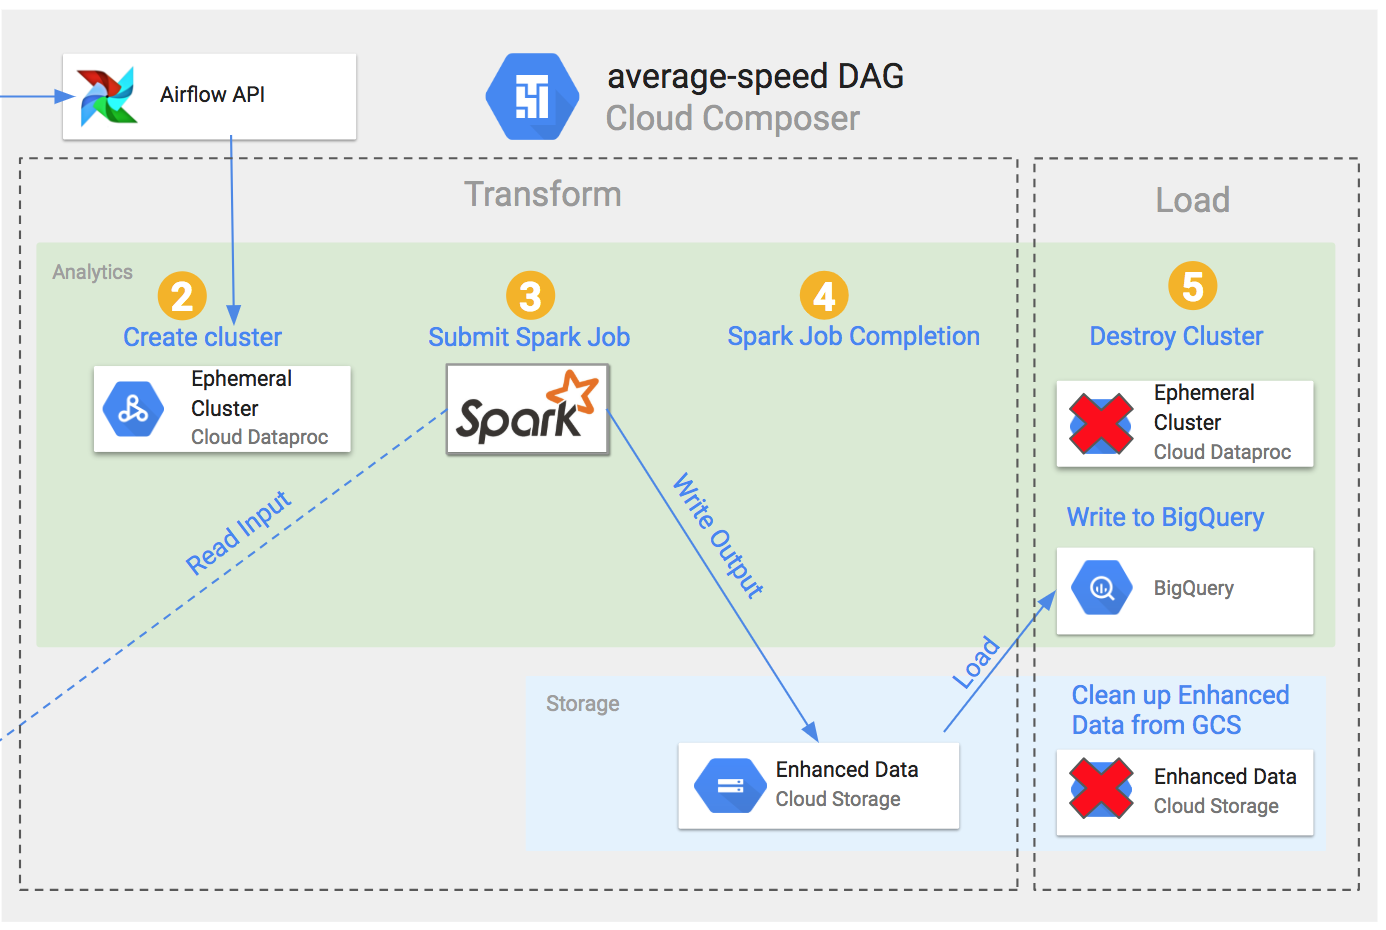 Using Airflow Experimental Rest API on Google Cloud Platform